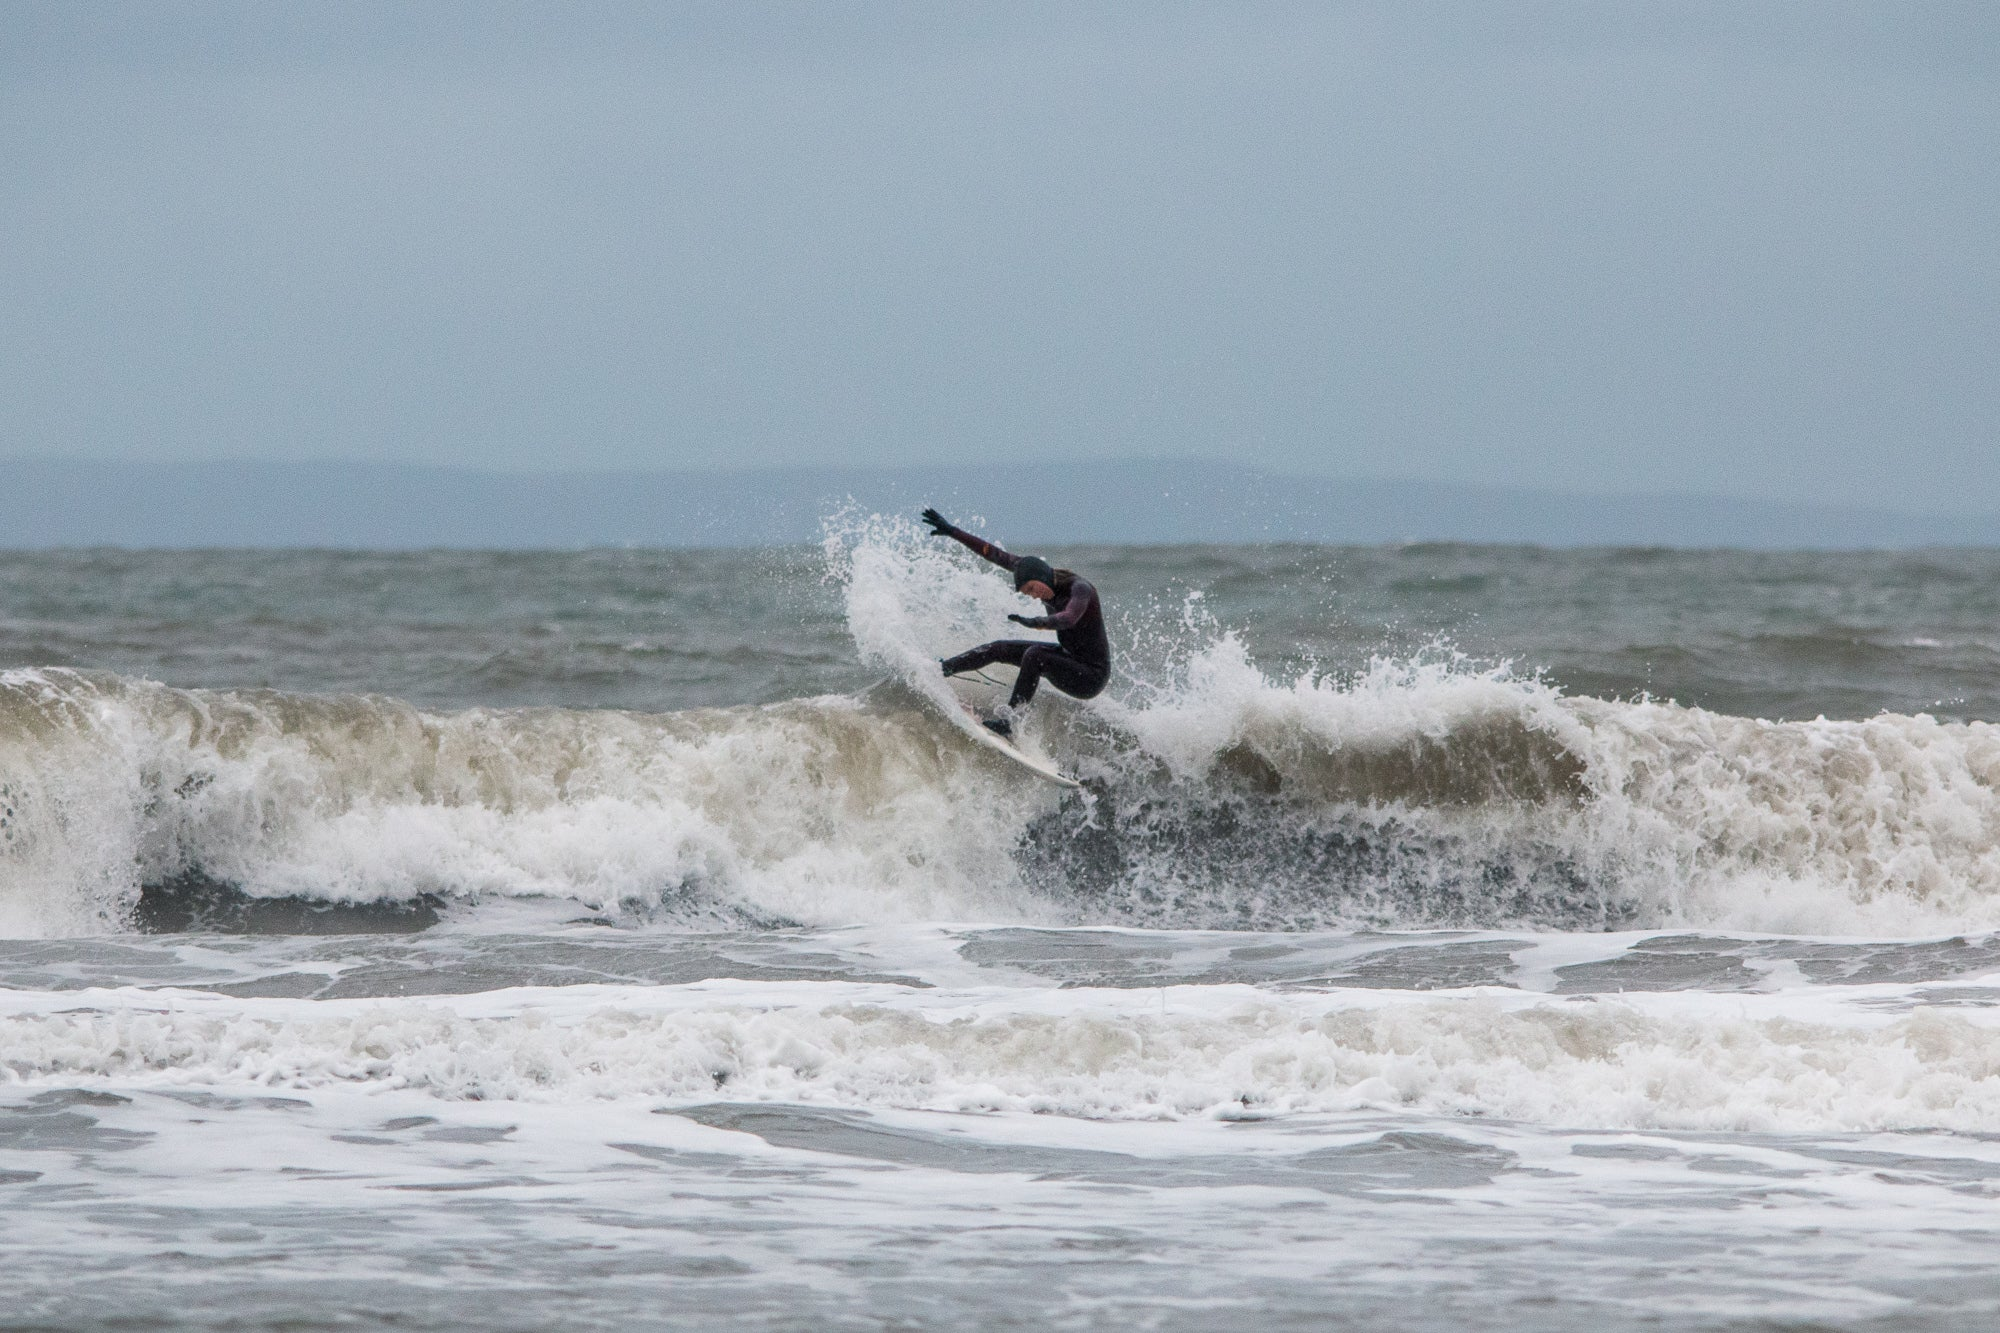 Lucy Campbell surfing at Croyde Beach